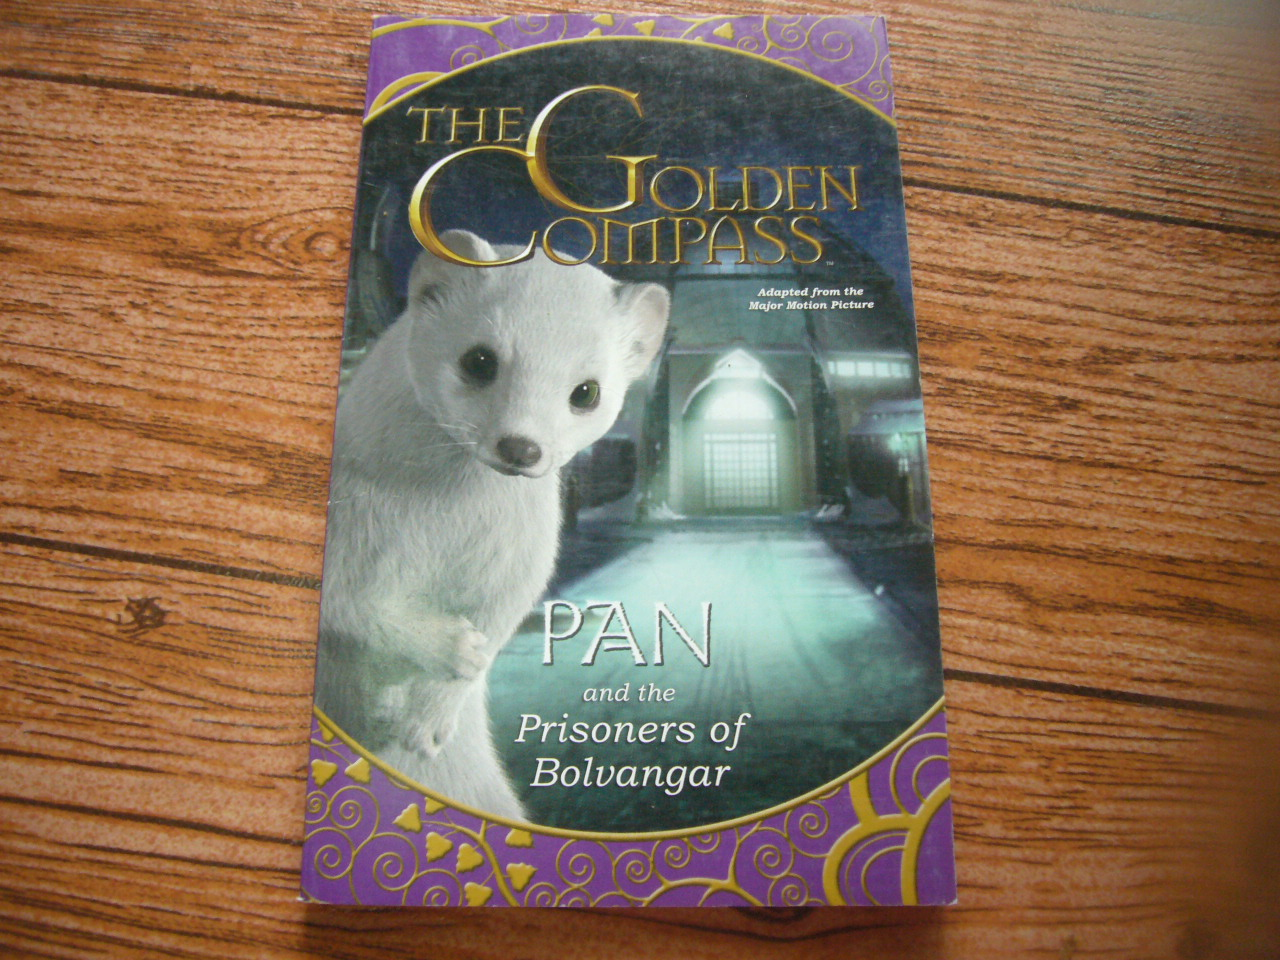 The Golden Compass: Pan and the Prisoners of Bolvangar